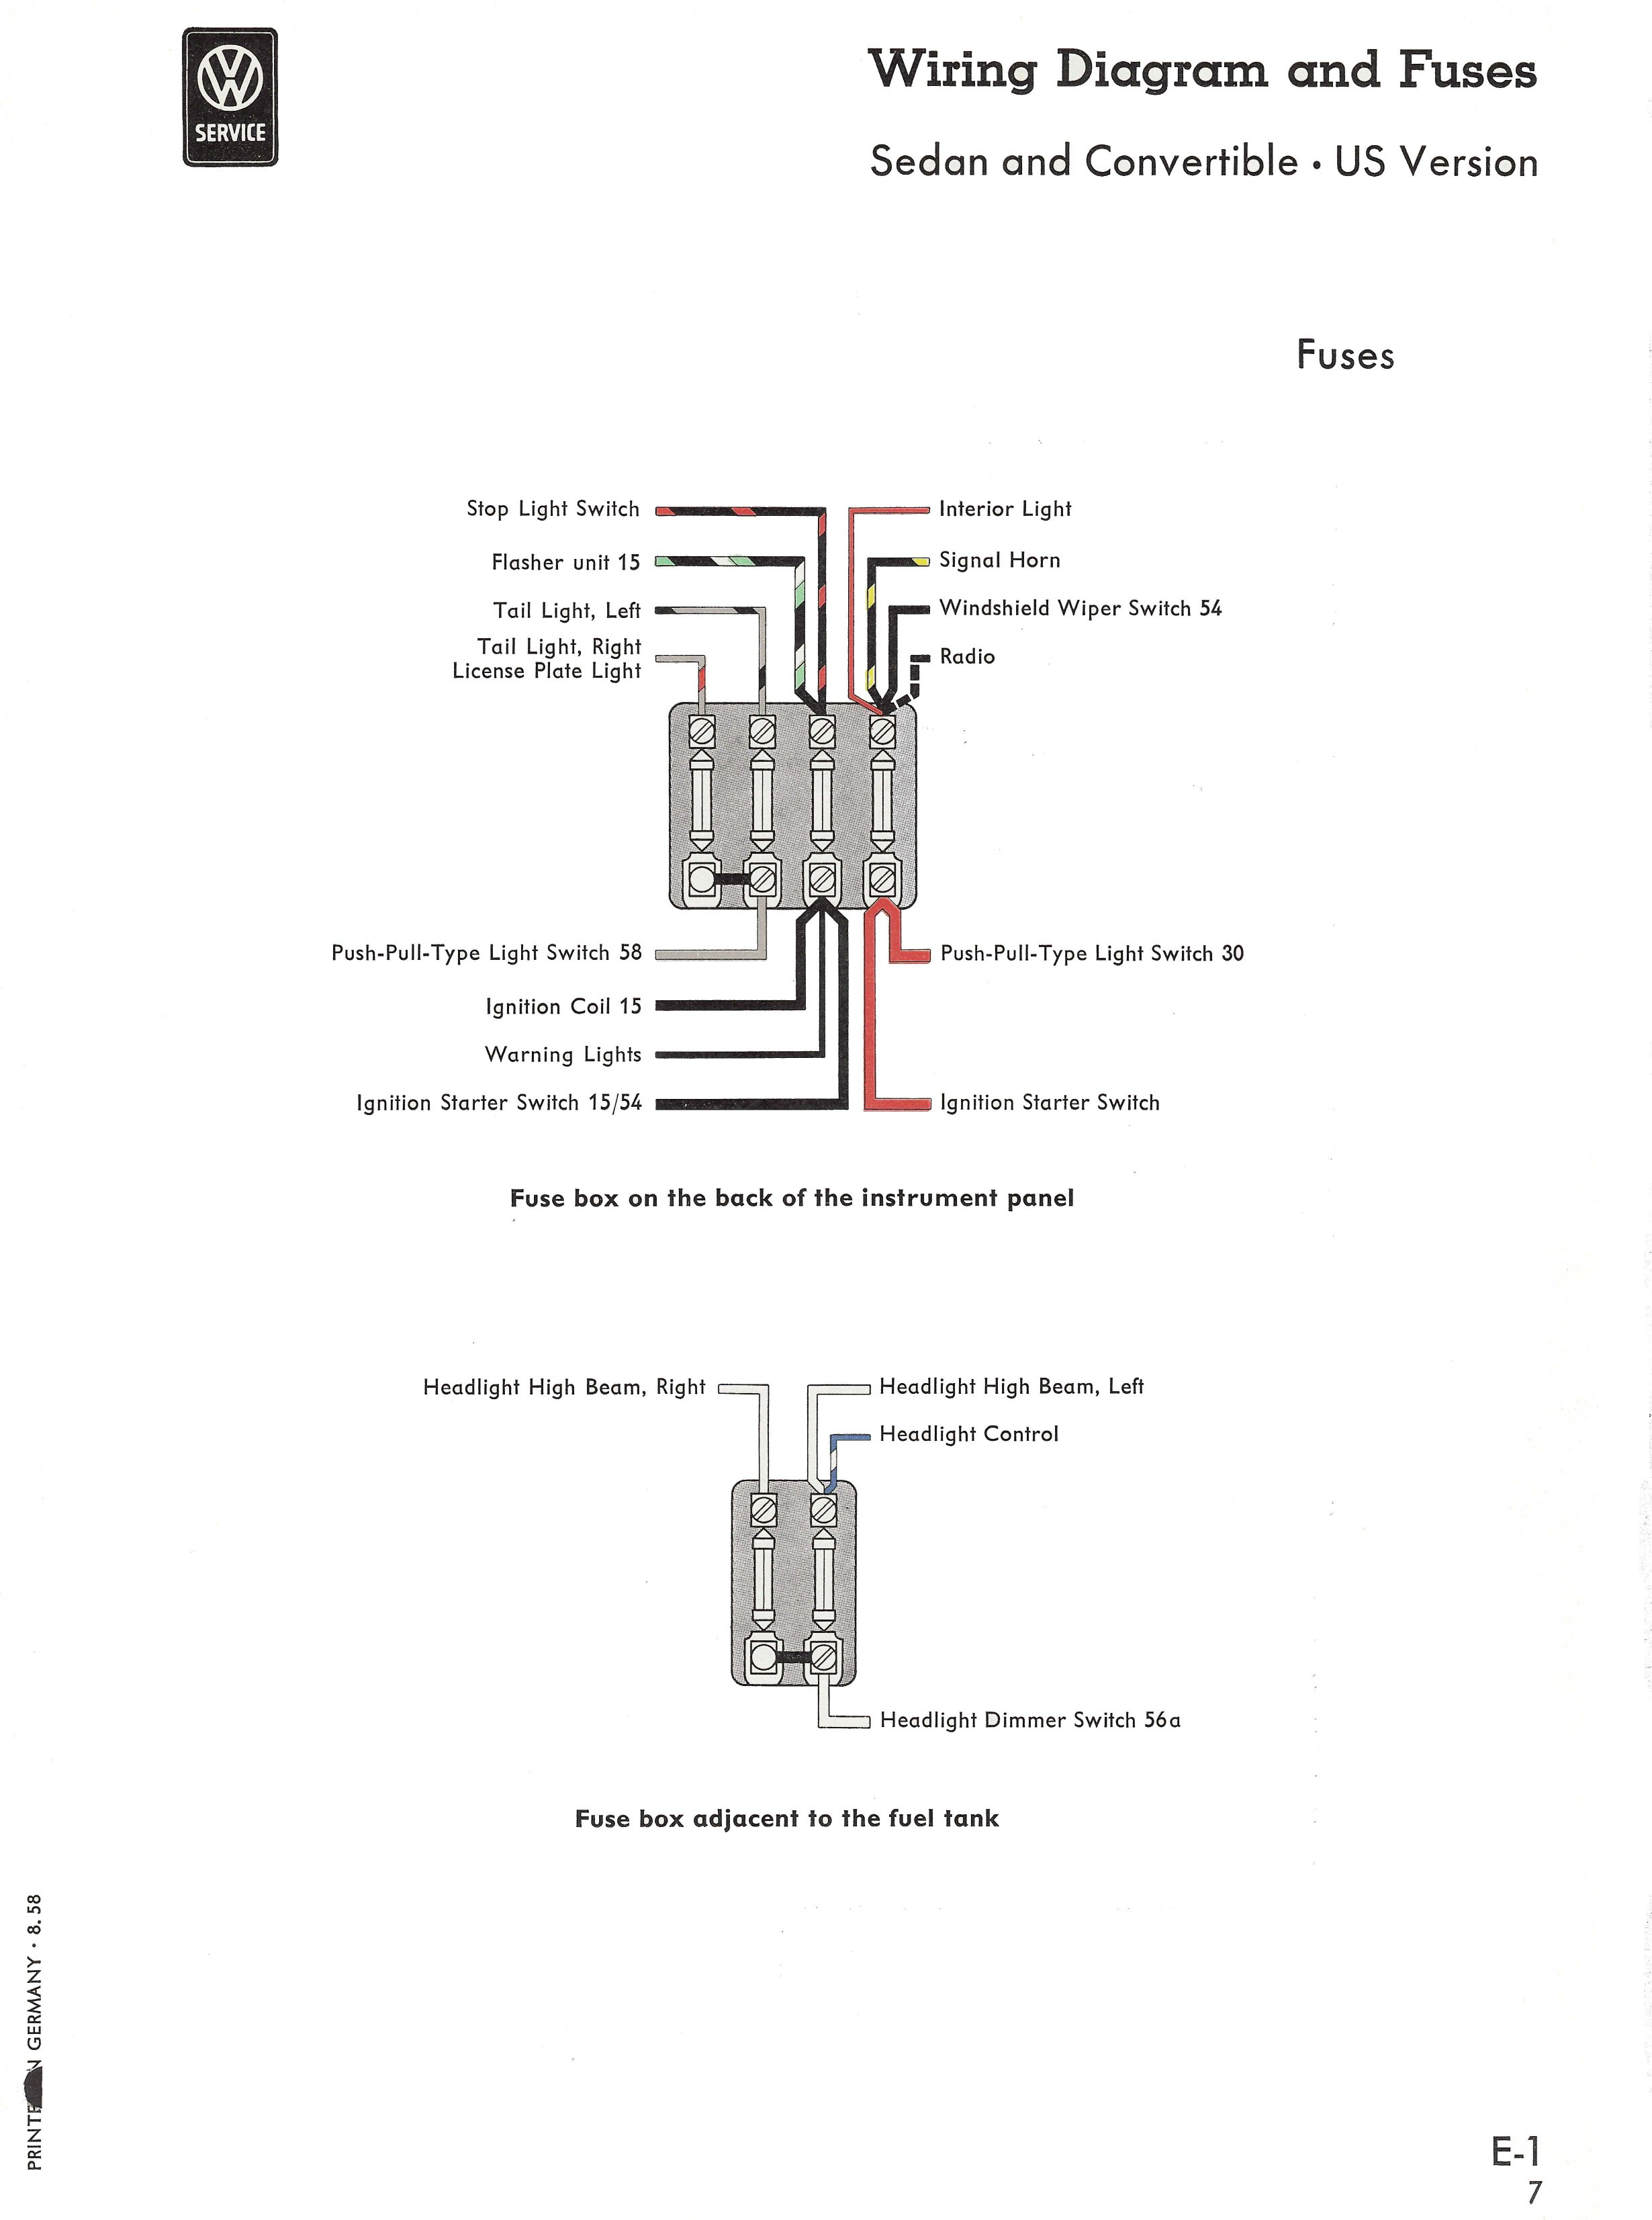 Type 1 Wiring Diagrams Air Cooled Vw Ignition Coil Diagram Key